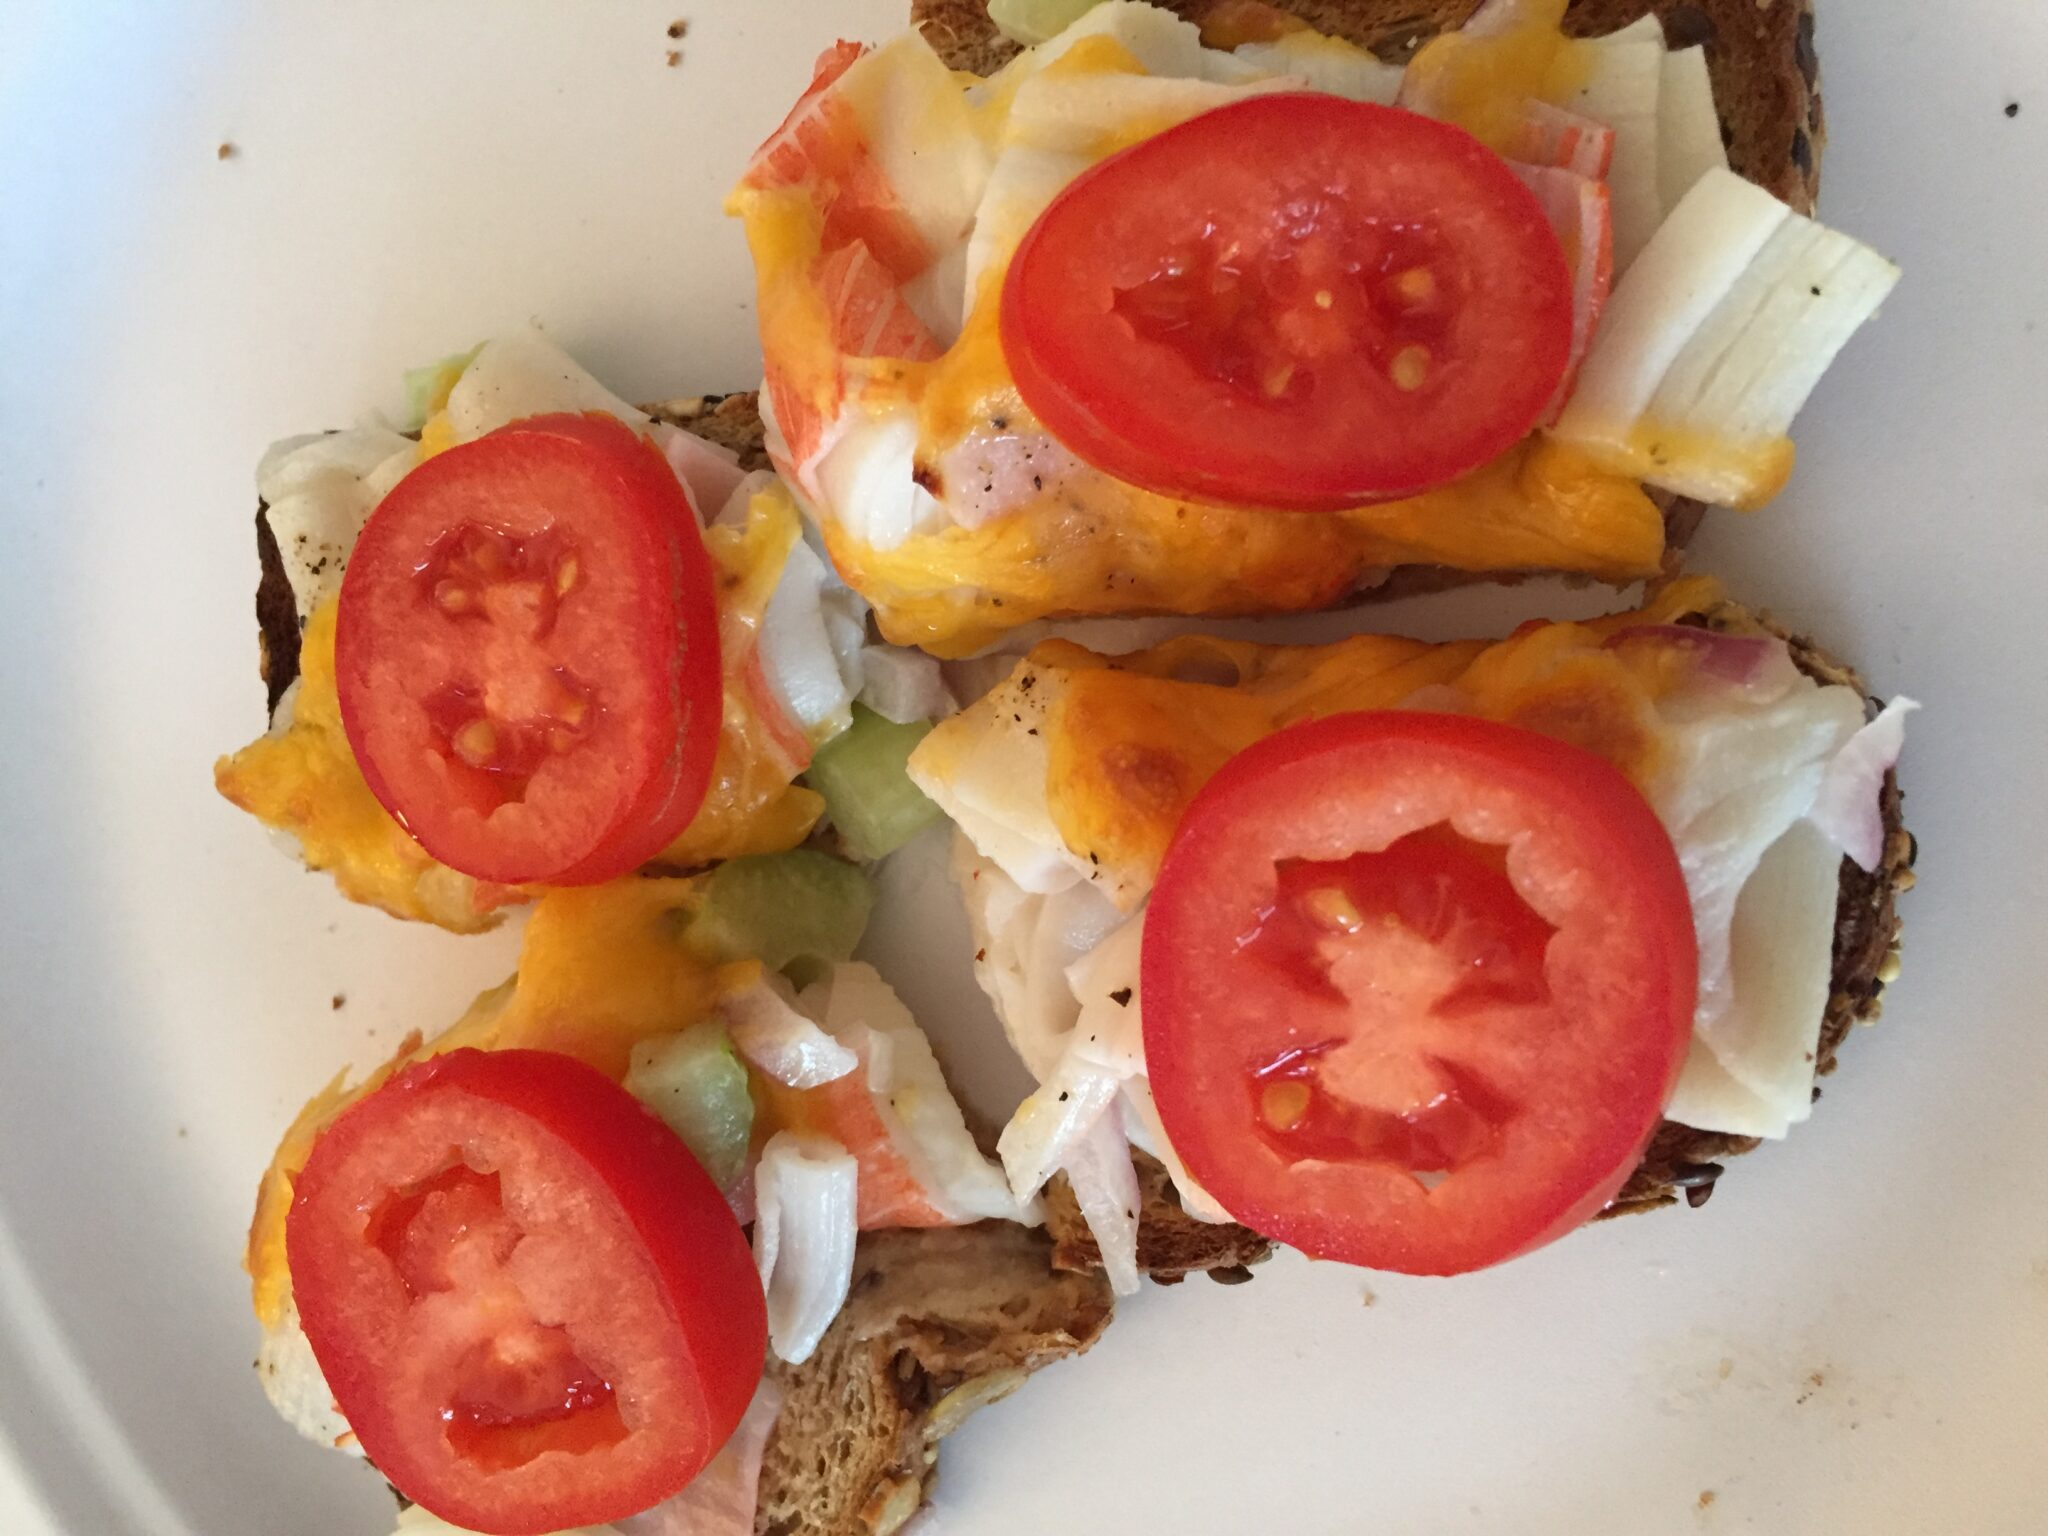 Having a Crabby Day? This Crab Sandwich Will Put a Smile On Your Face